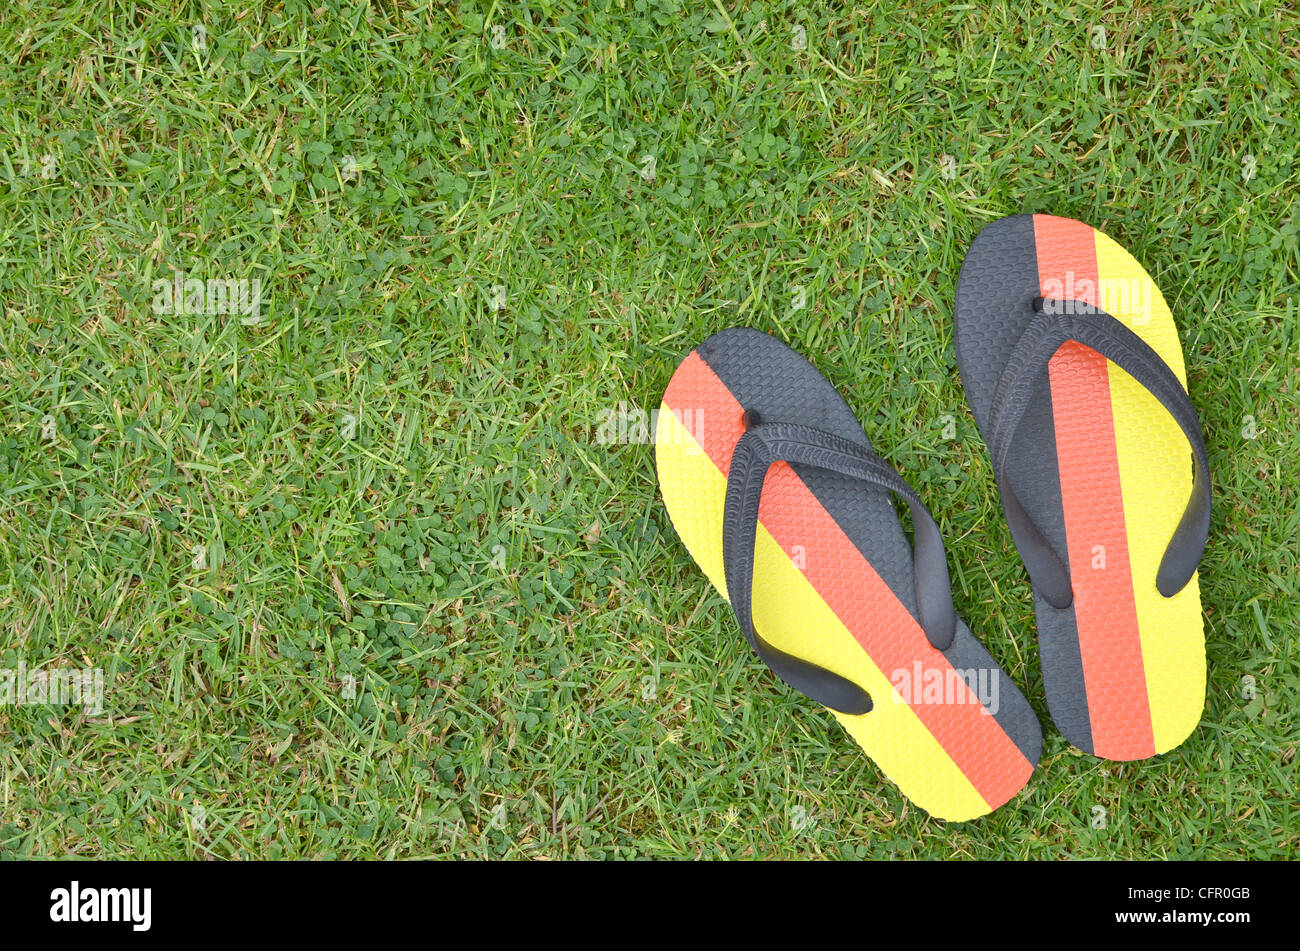 Germany flag printed flip-flops placed on the grass - Stock Image